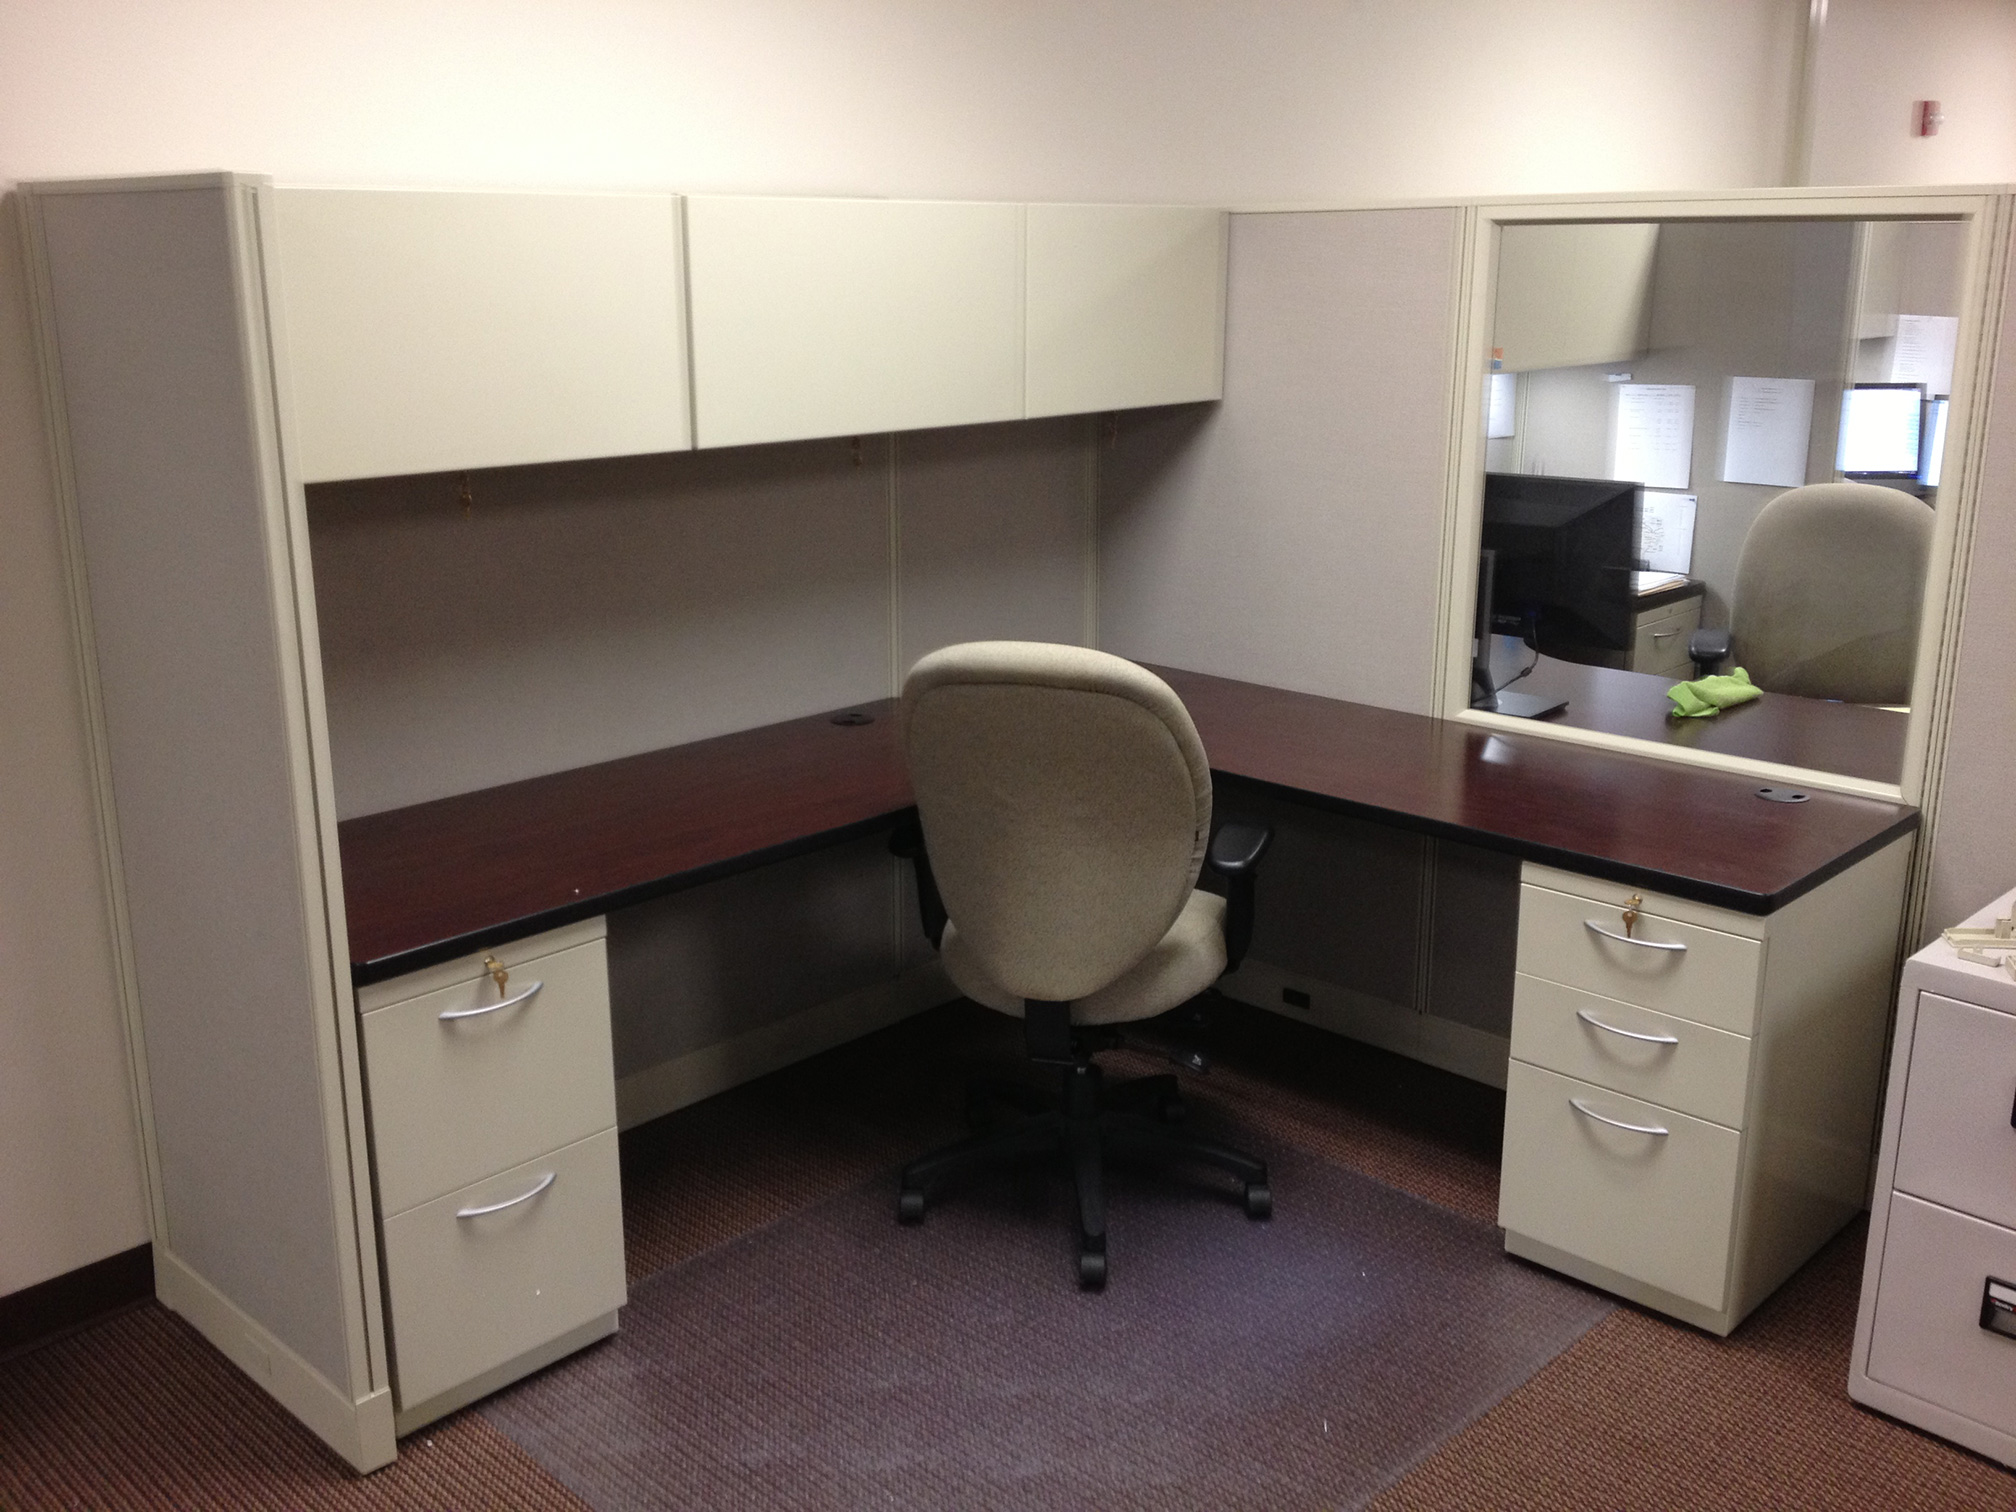 cubicle-manasota-office-supplies-llc.jpg